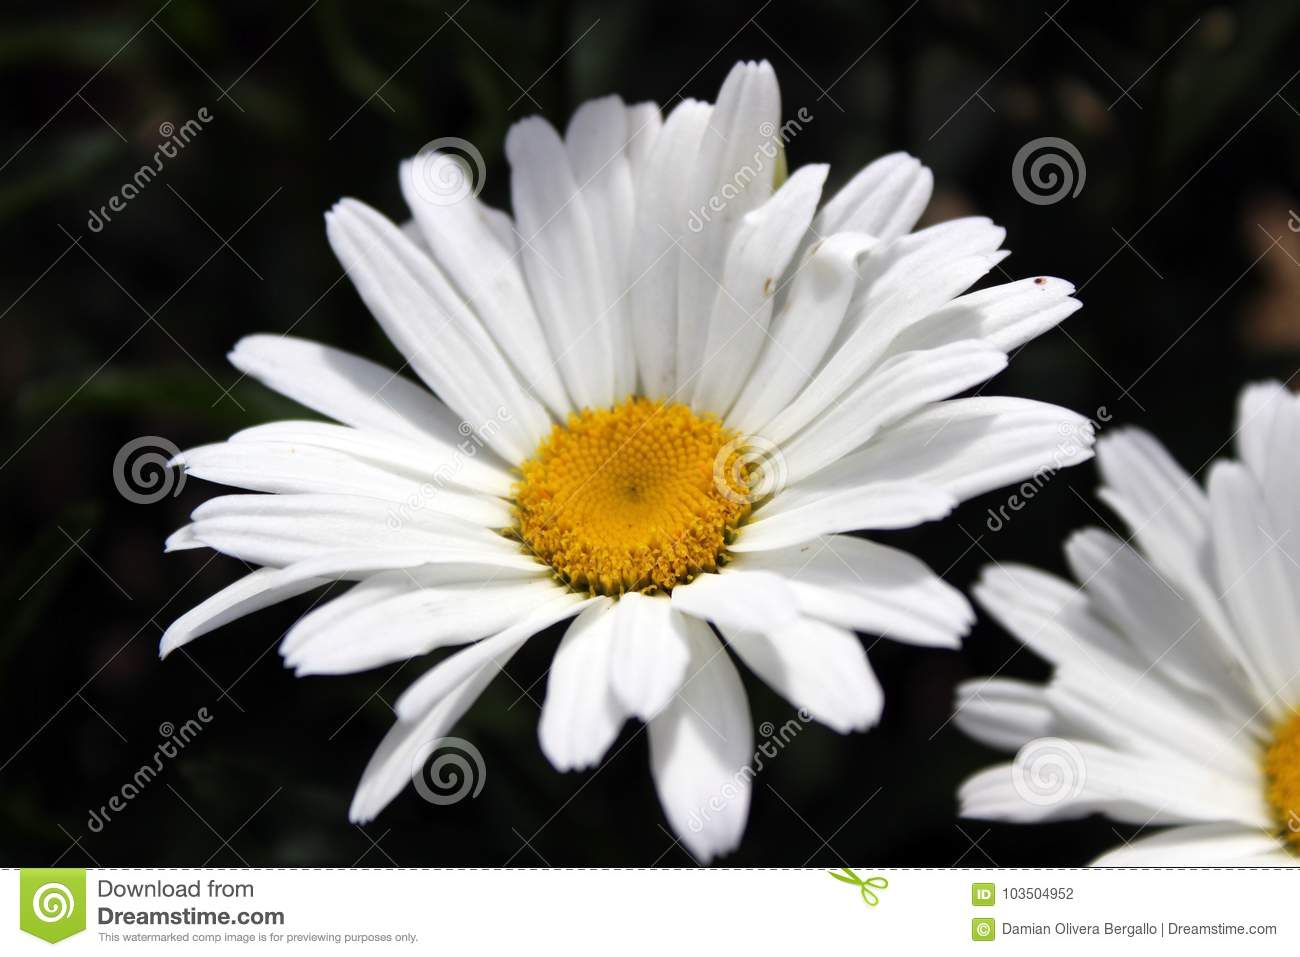 White and yellow pretty flower in spring